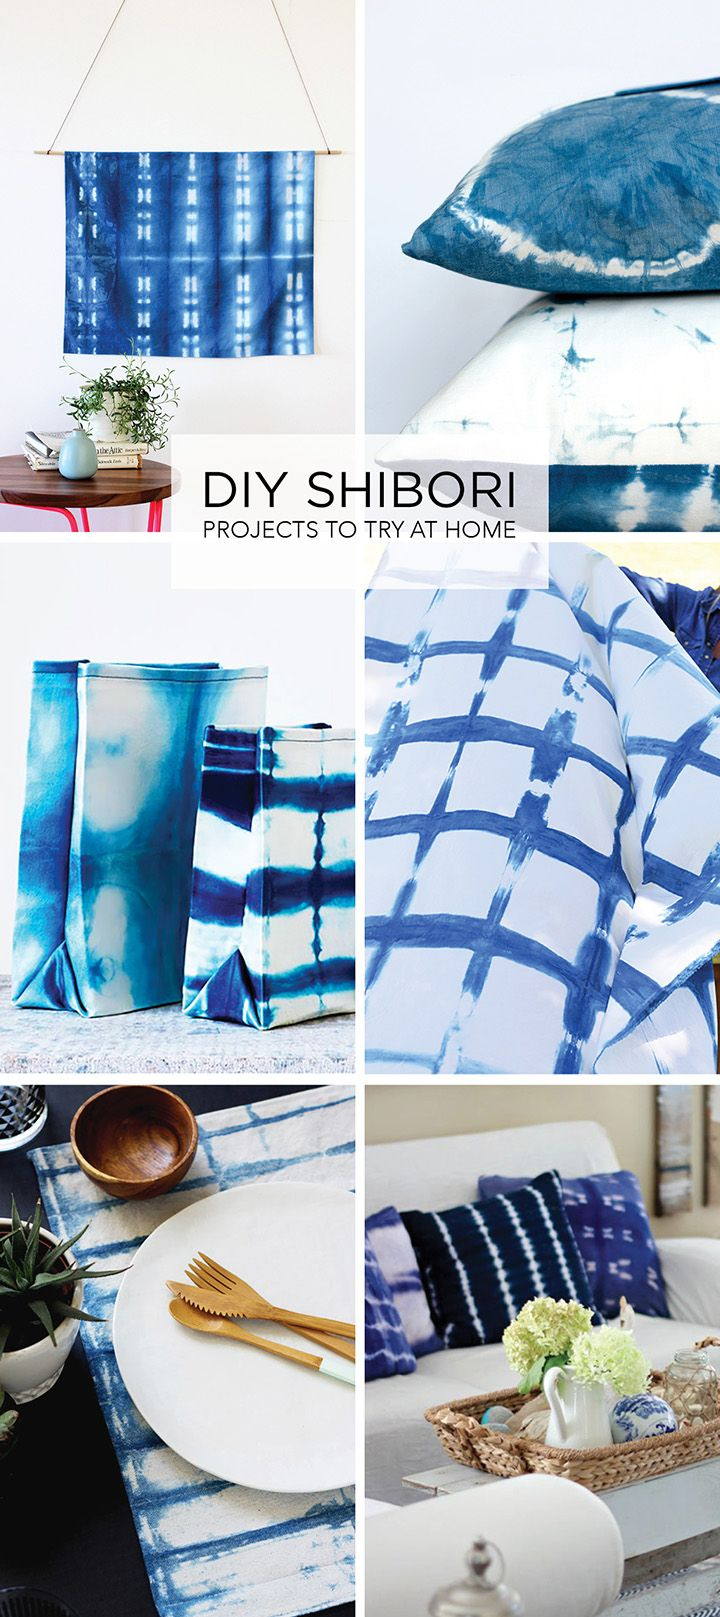 We've rounded up our favorite DIY shibori projects. If you're ready to try indigo dyeing using the shibori technique, these are some great DIYs to try.